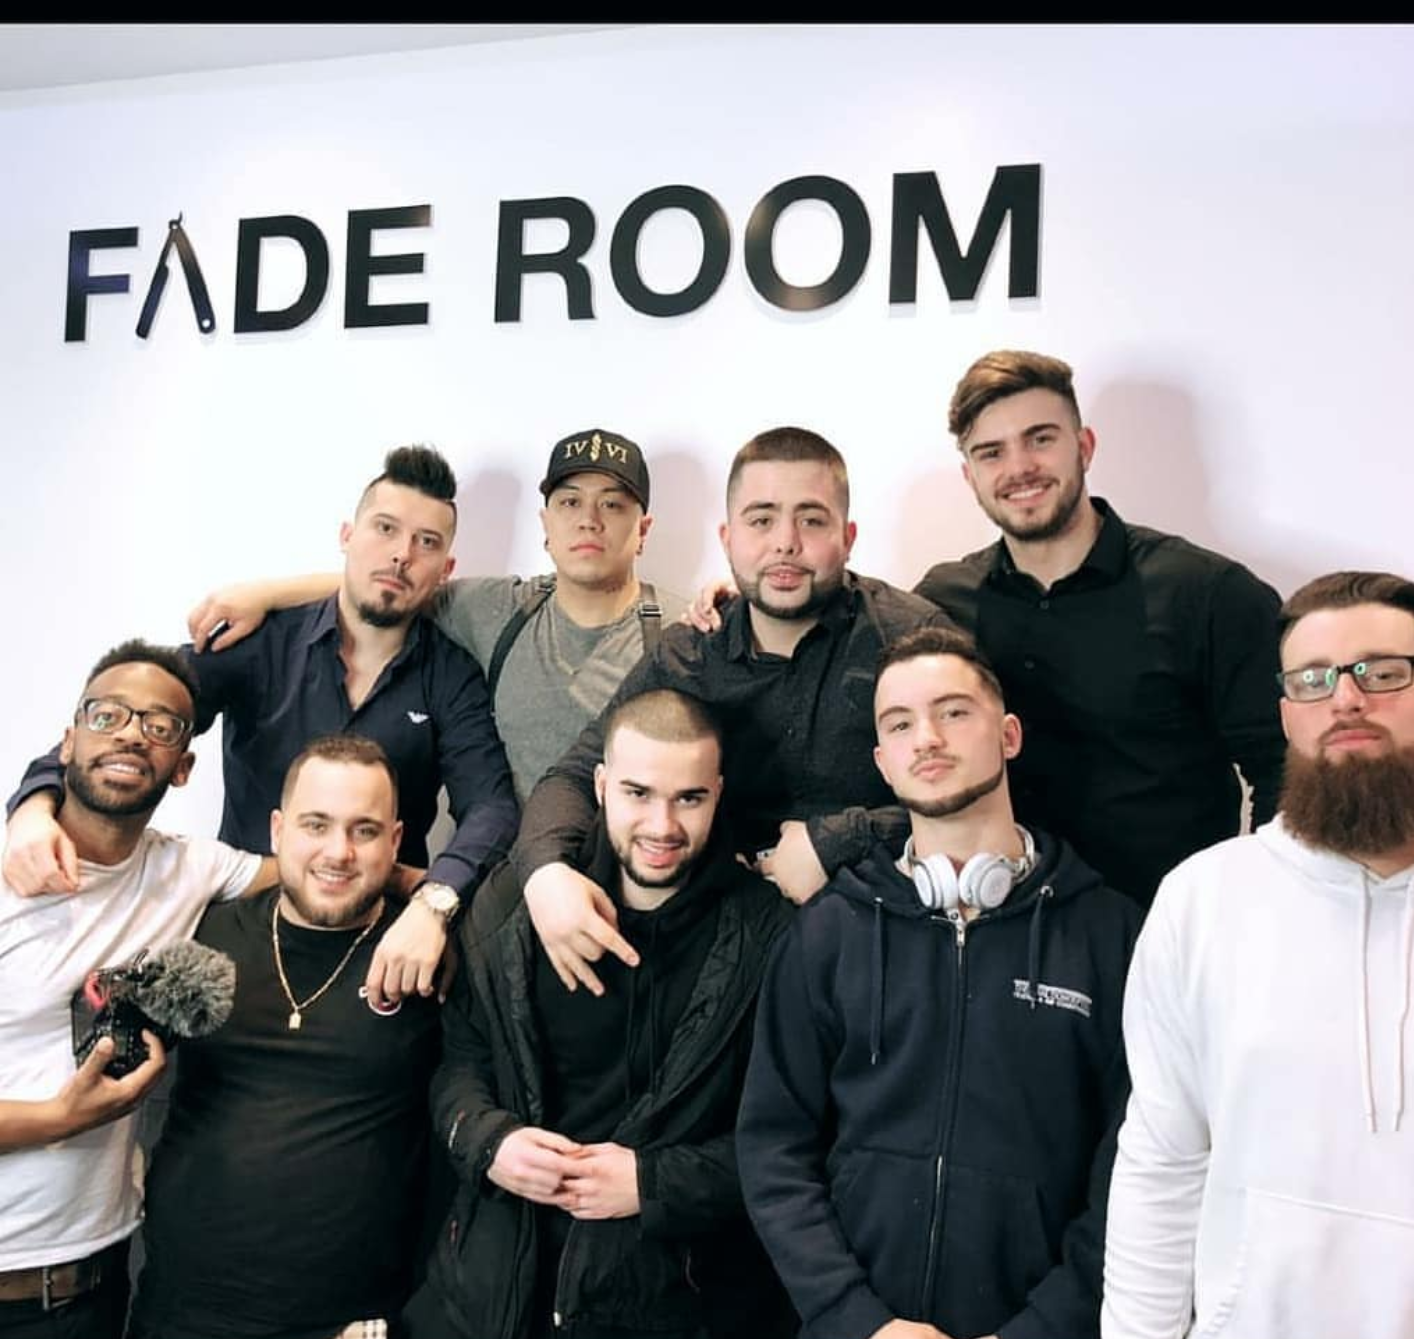 Scott Famos Ramos at Fade Room Toronto hands on barber class